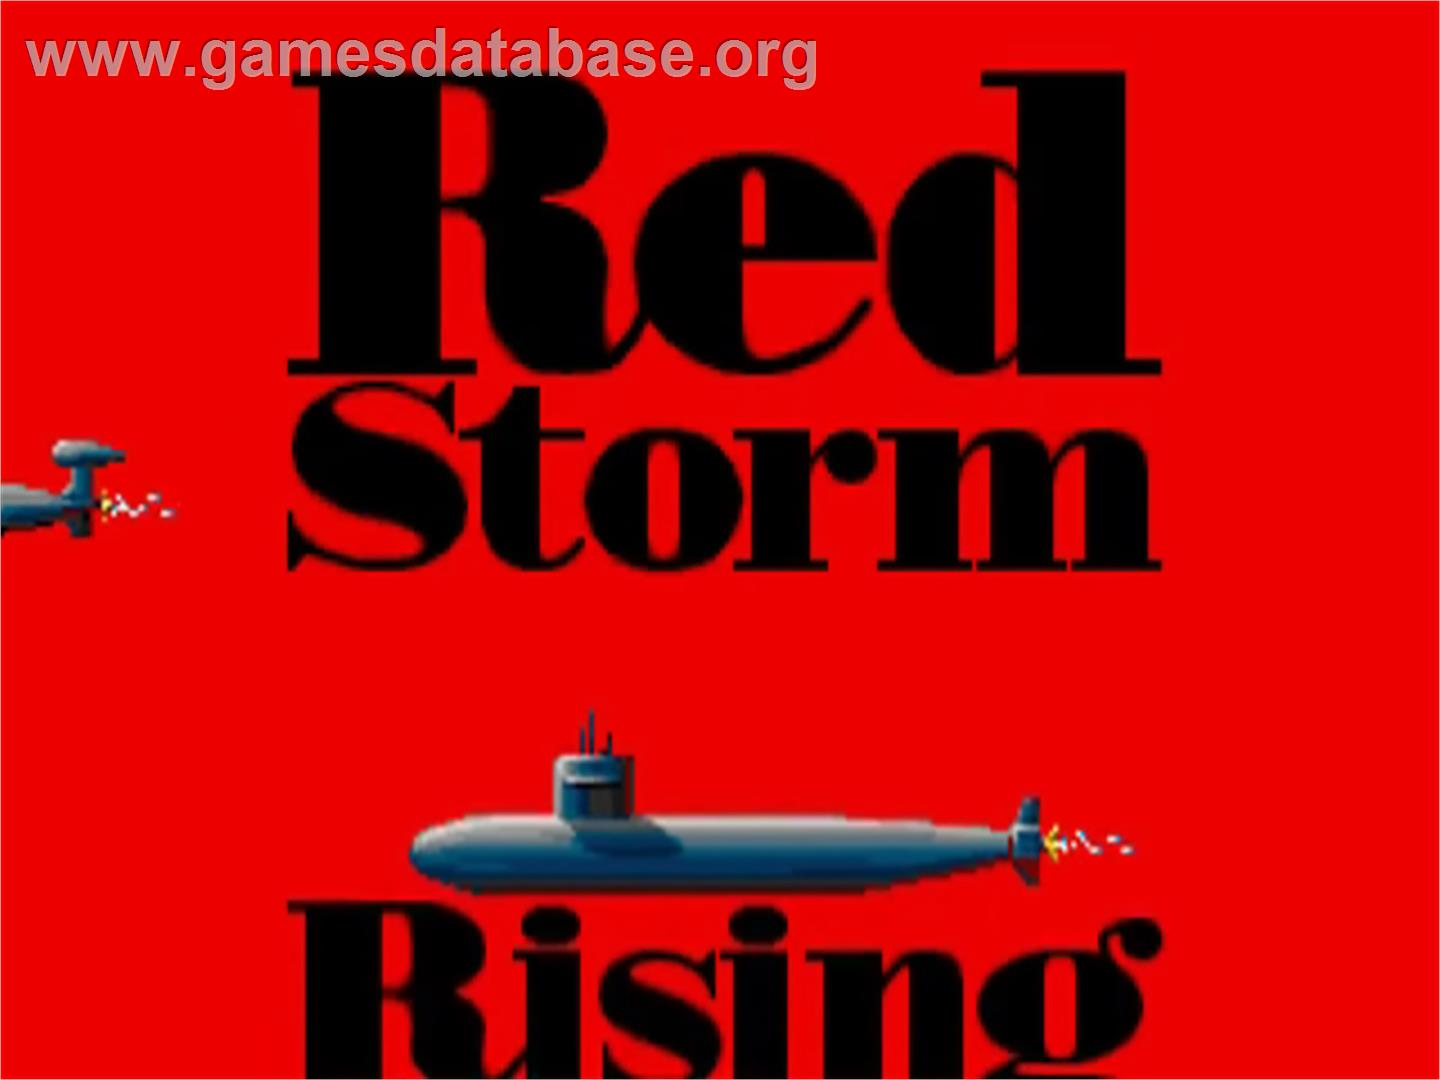 the soviet union and russias offensive in red storm rising by tom clancy ۹۷۸۰۸۲۰۴۵۳۵۶۹ ۰۸۲۰۴۵۳۵۶۰ the agri-environmental policy of the european union stronger than the storm ۹۴ feet and rising.